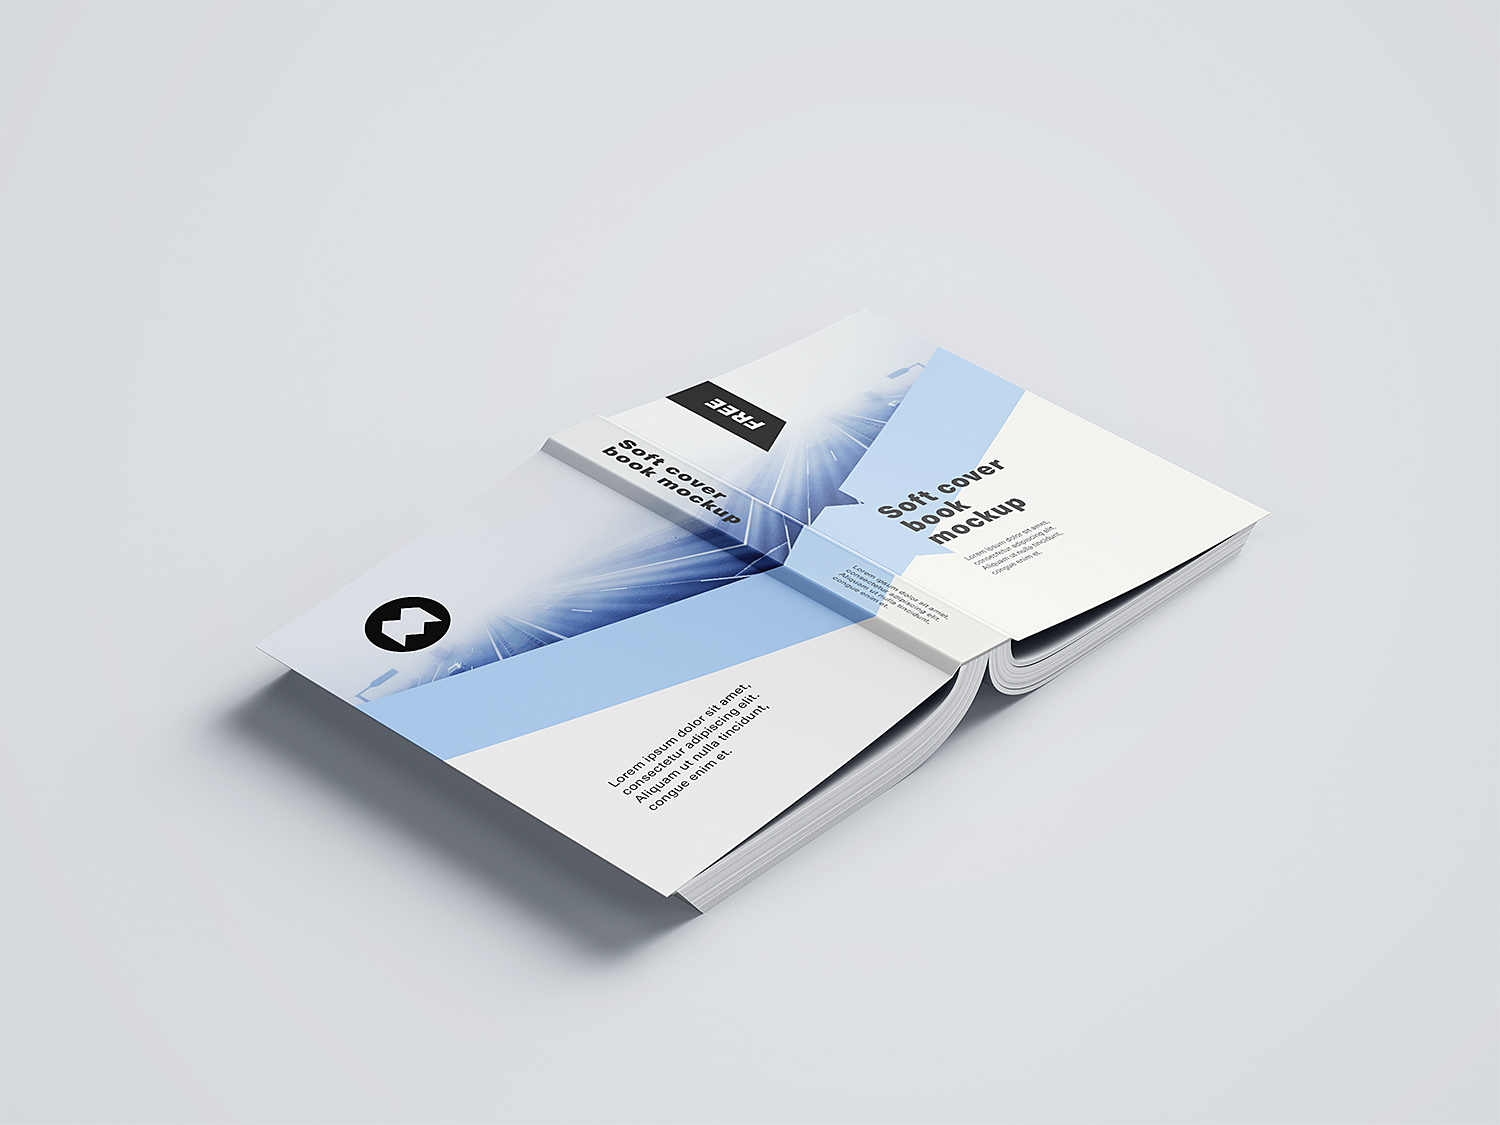 Soft_Cover_Book_Mockup_11